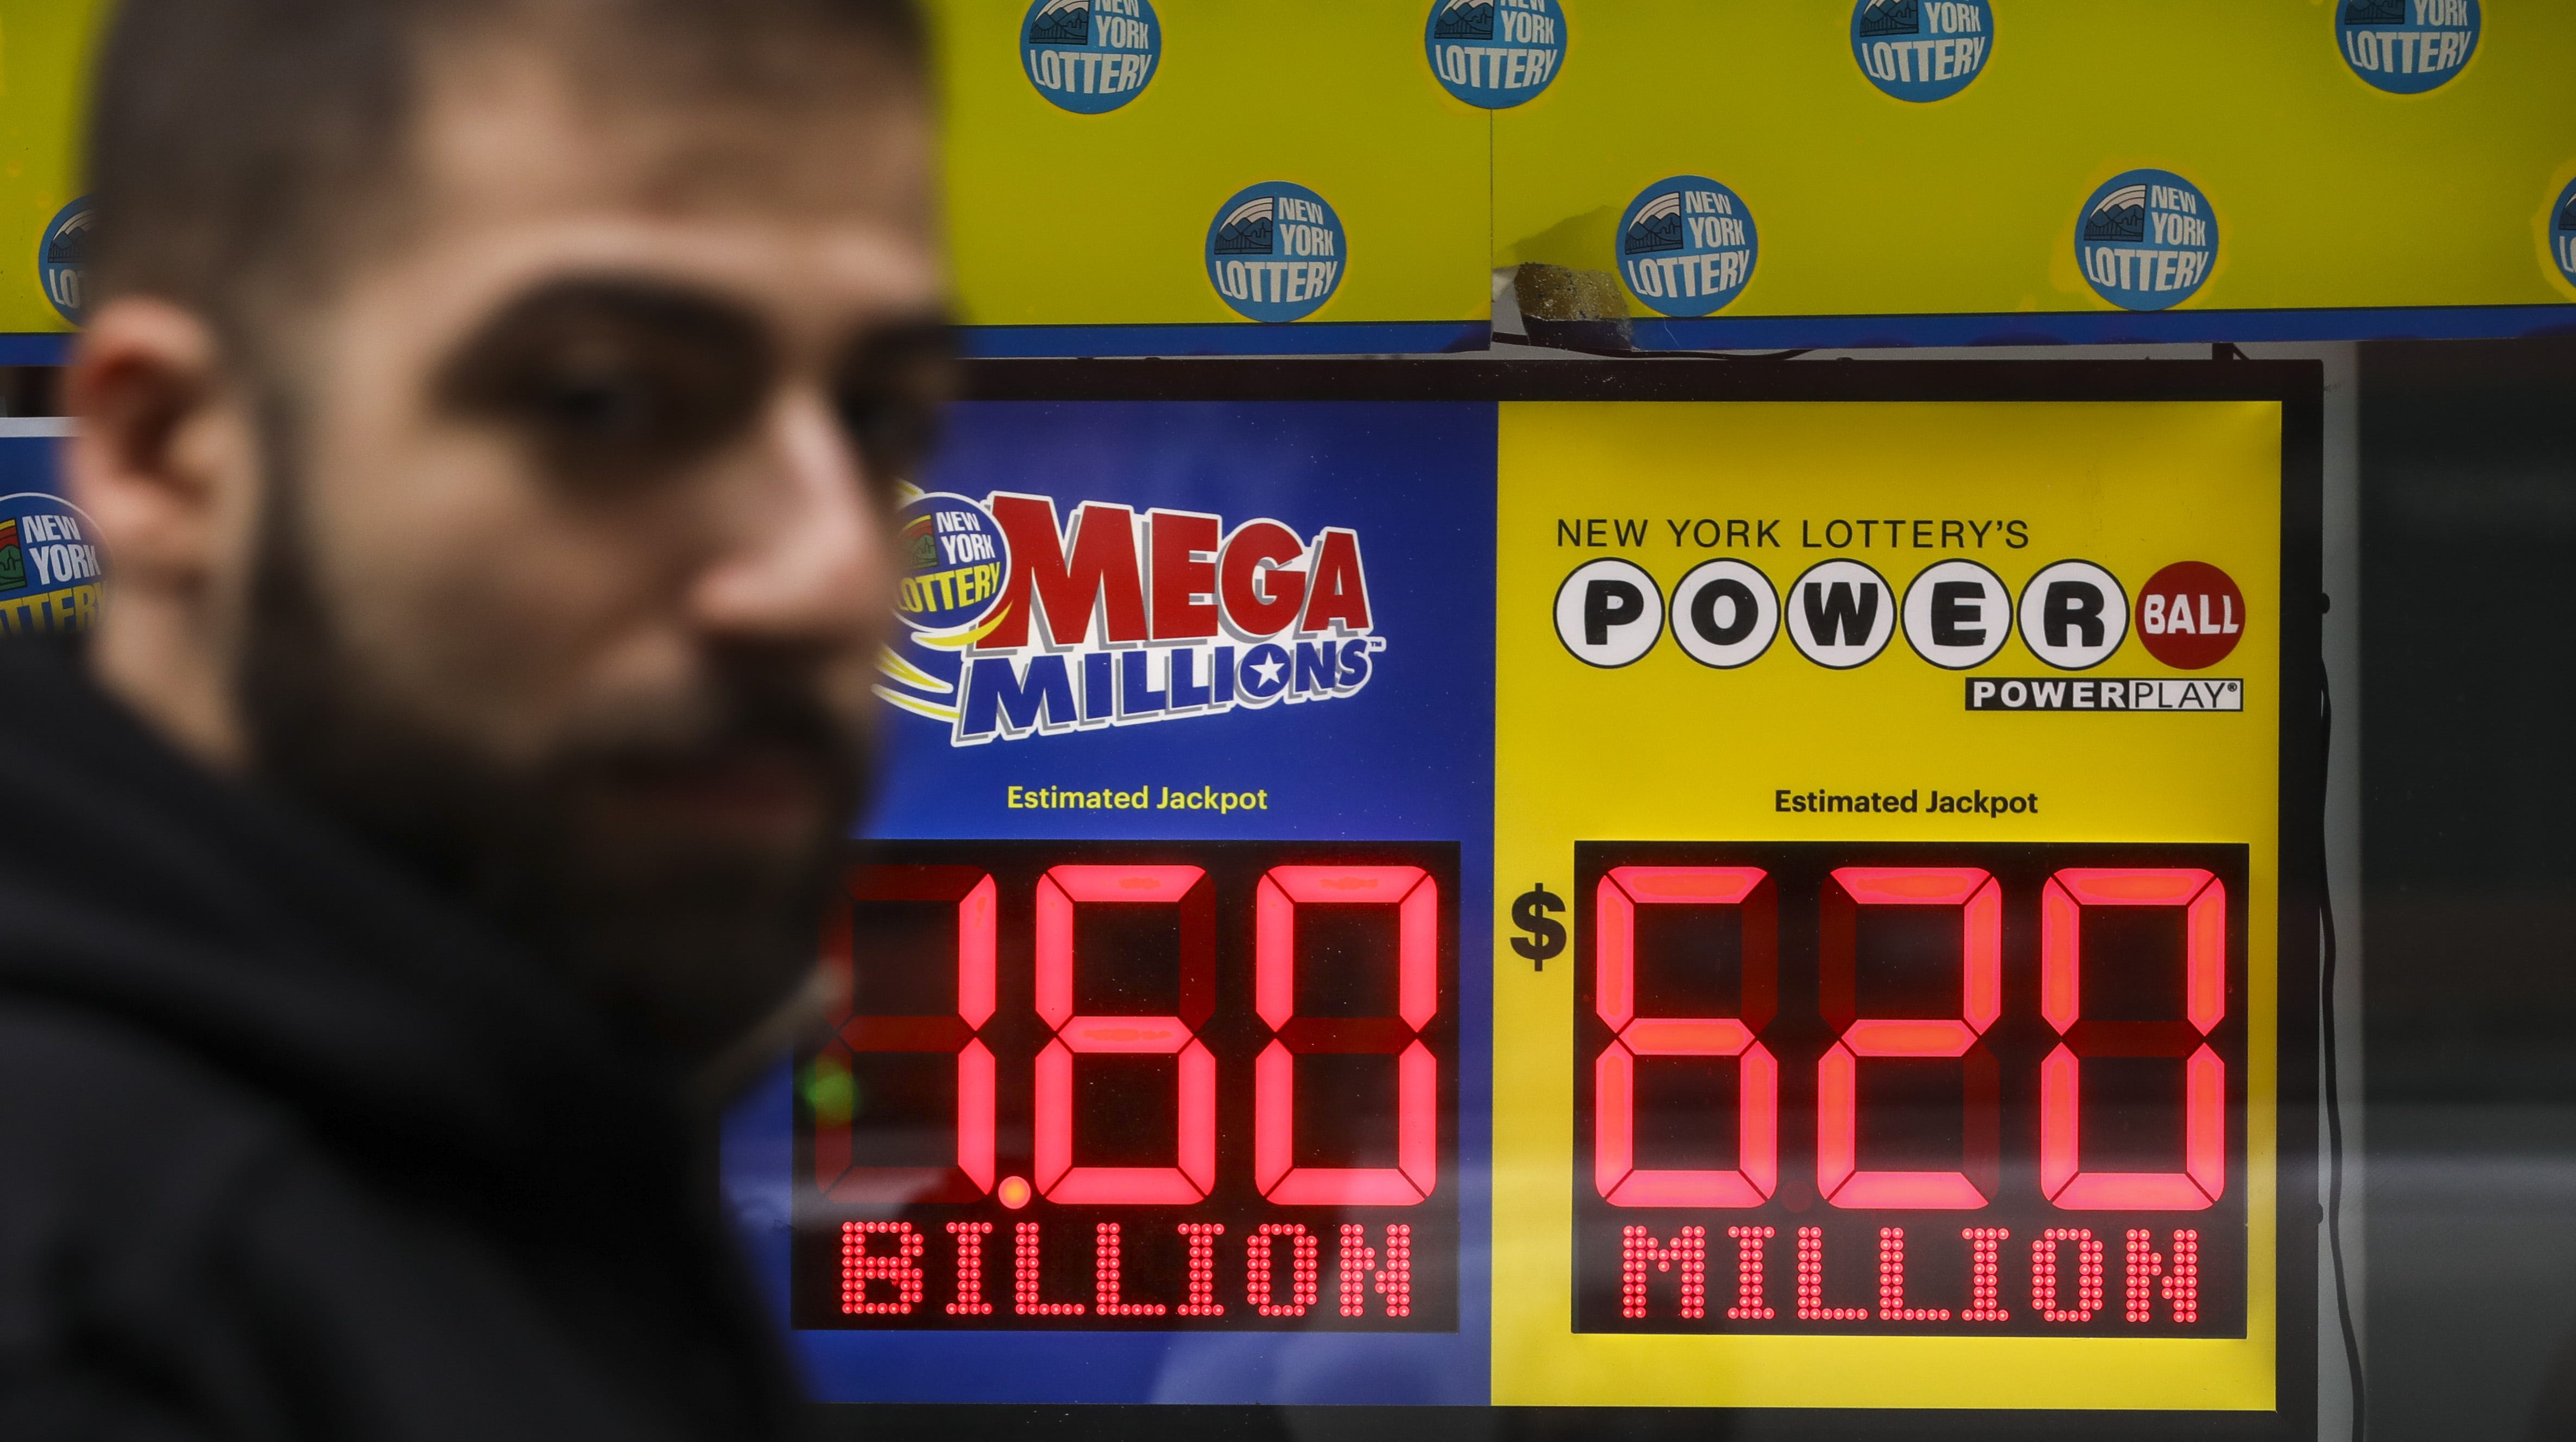 NEW YORK, NY - OCTOBER 23: A man walks past advertisements for the Mega Millions and Powerball lottery hanging on a window of the New York Lottery Customer Service Center, October 23, 2018 in New York City.